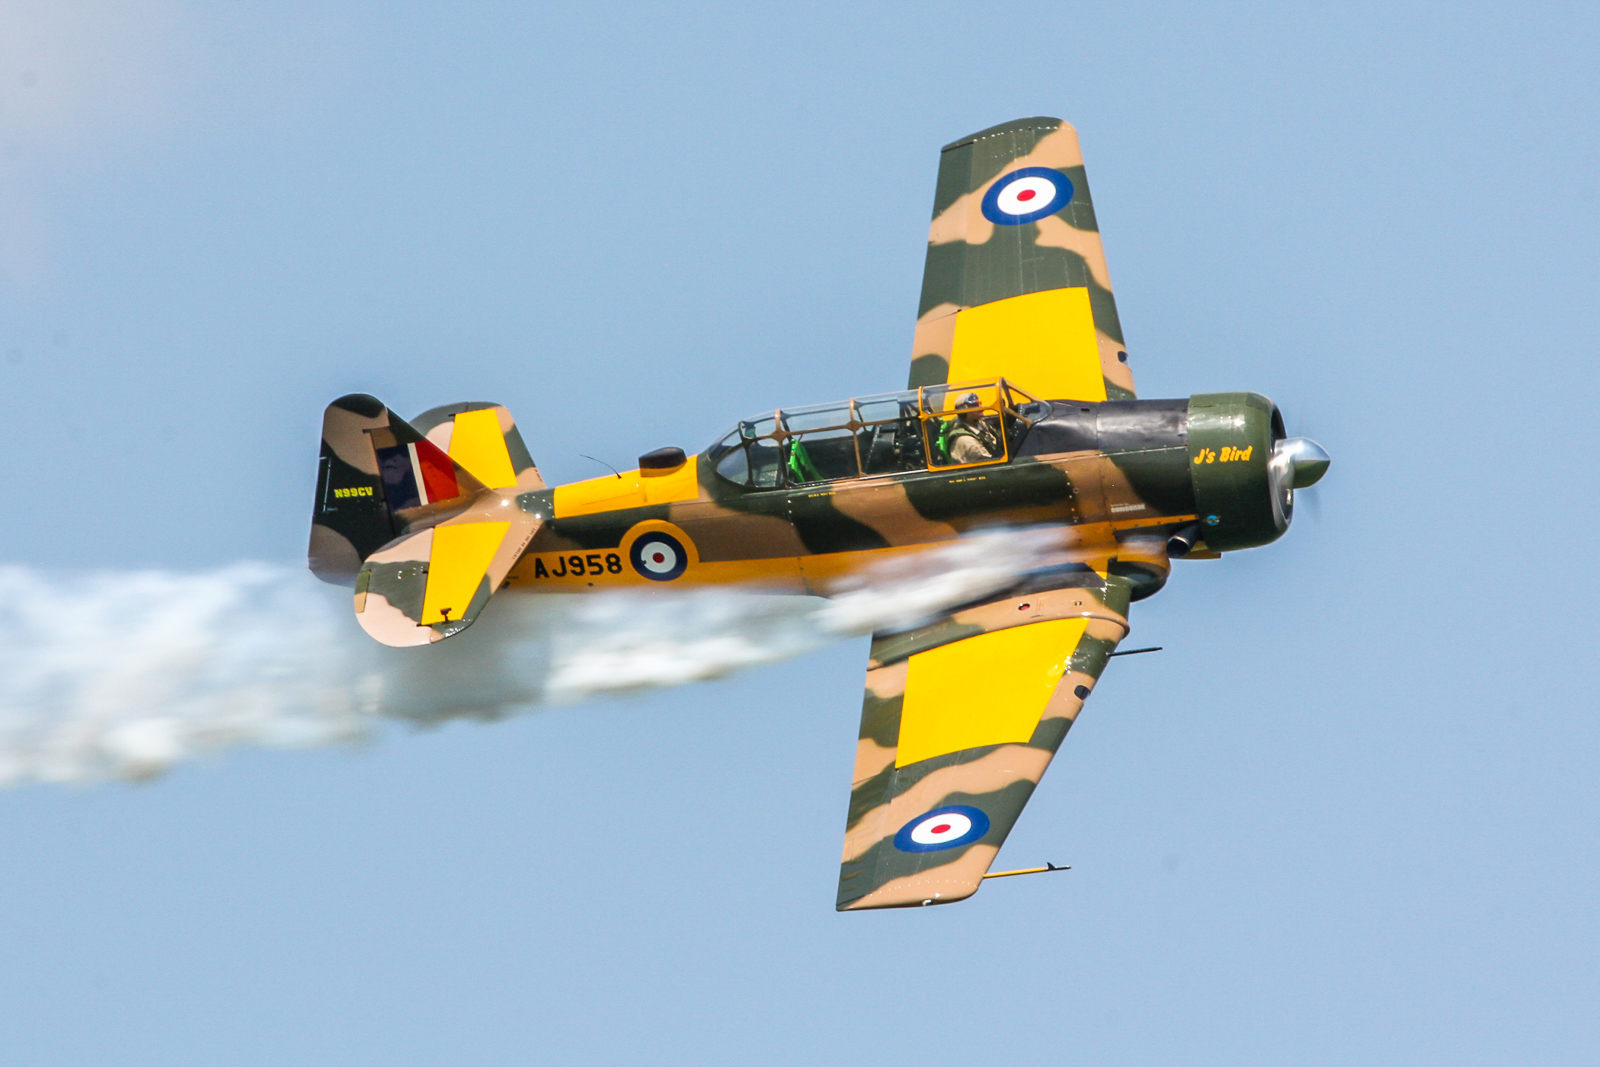 John 'Skipper' Hyle in a Harvard Mk.4. (photo by Tom Pawlesh)